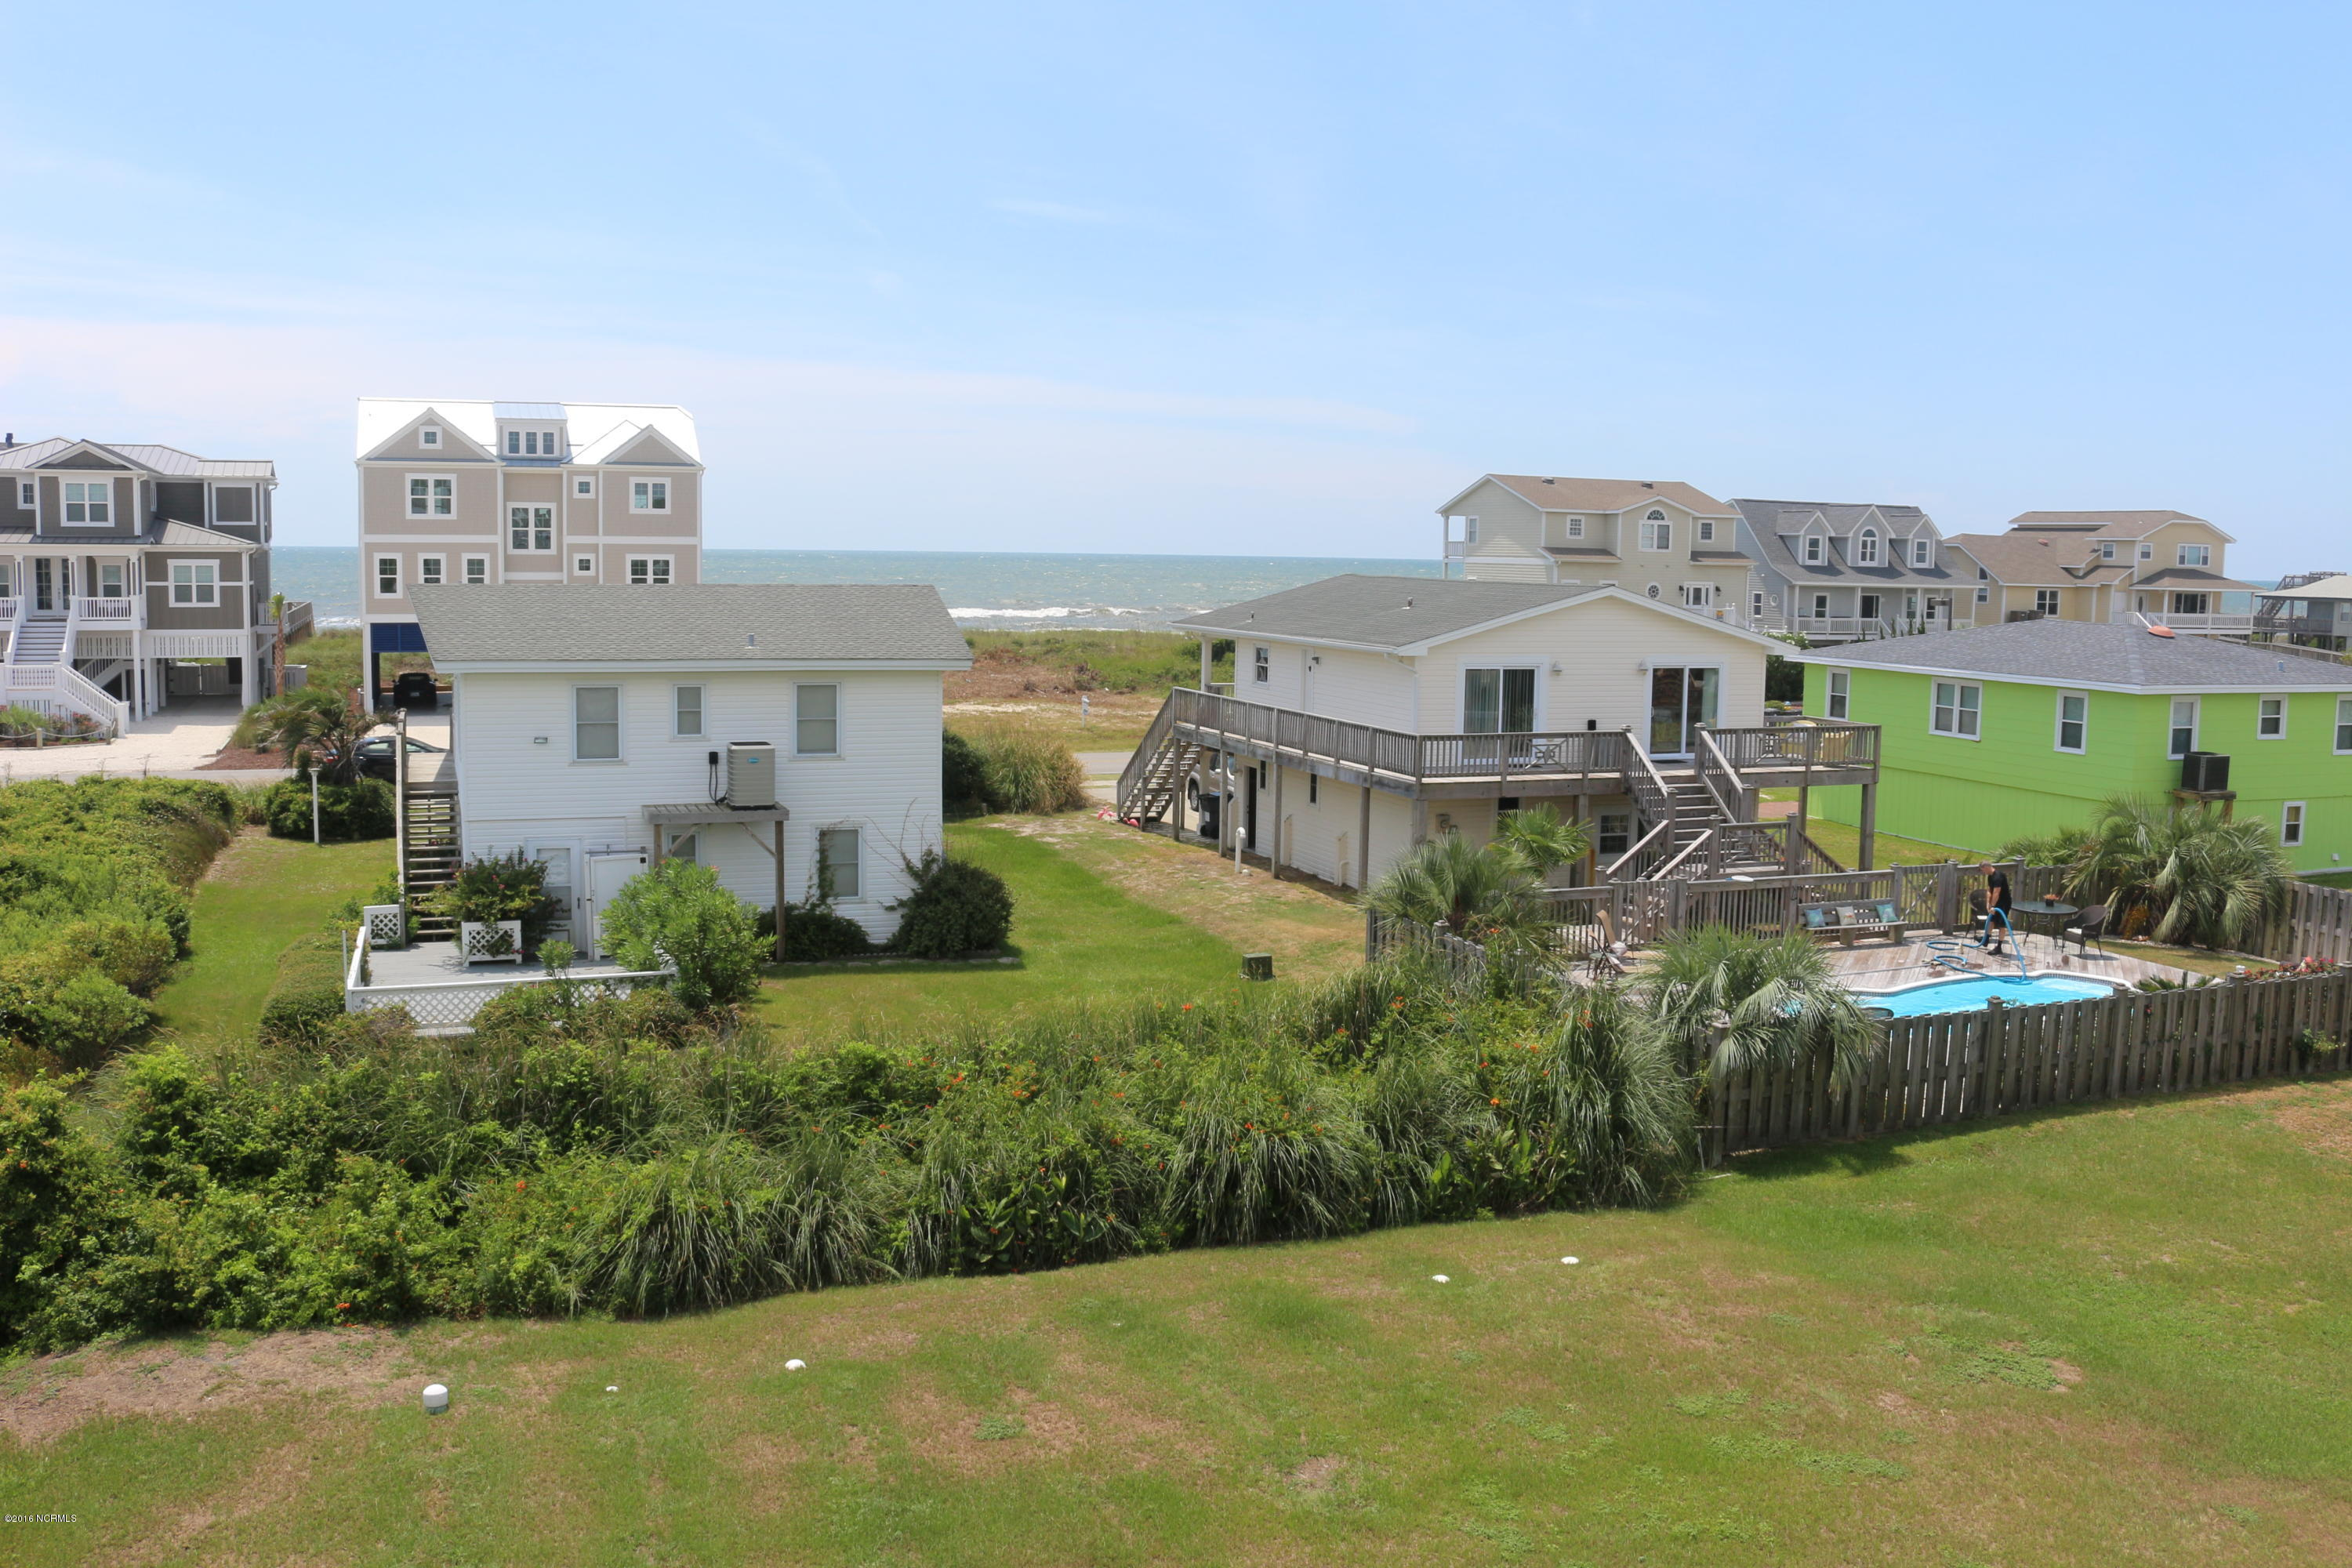 289 Brunswick Avenue, Holden Beach, North Carolina, 3 Bedrooms Bedrooms, 4 Rooms Rooms,2 BathroomsBathrooms,Condominium,For sale,Brunswick,100076061